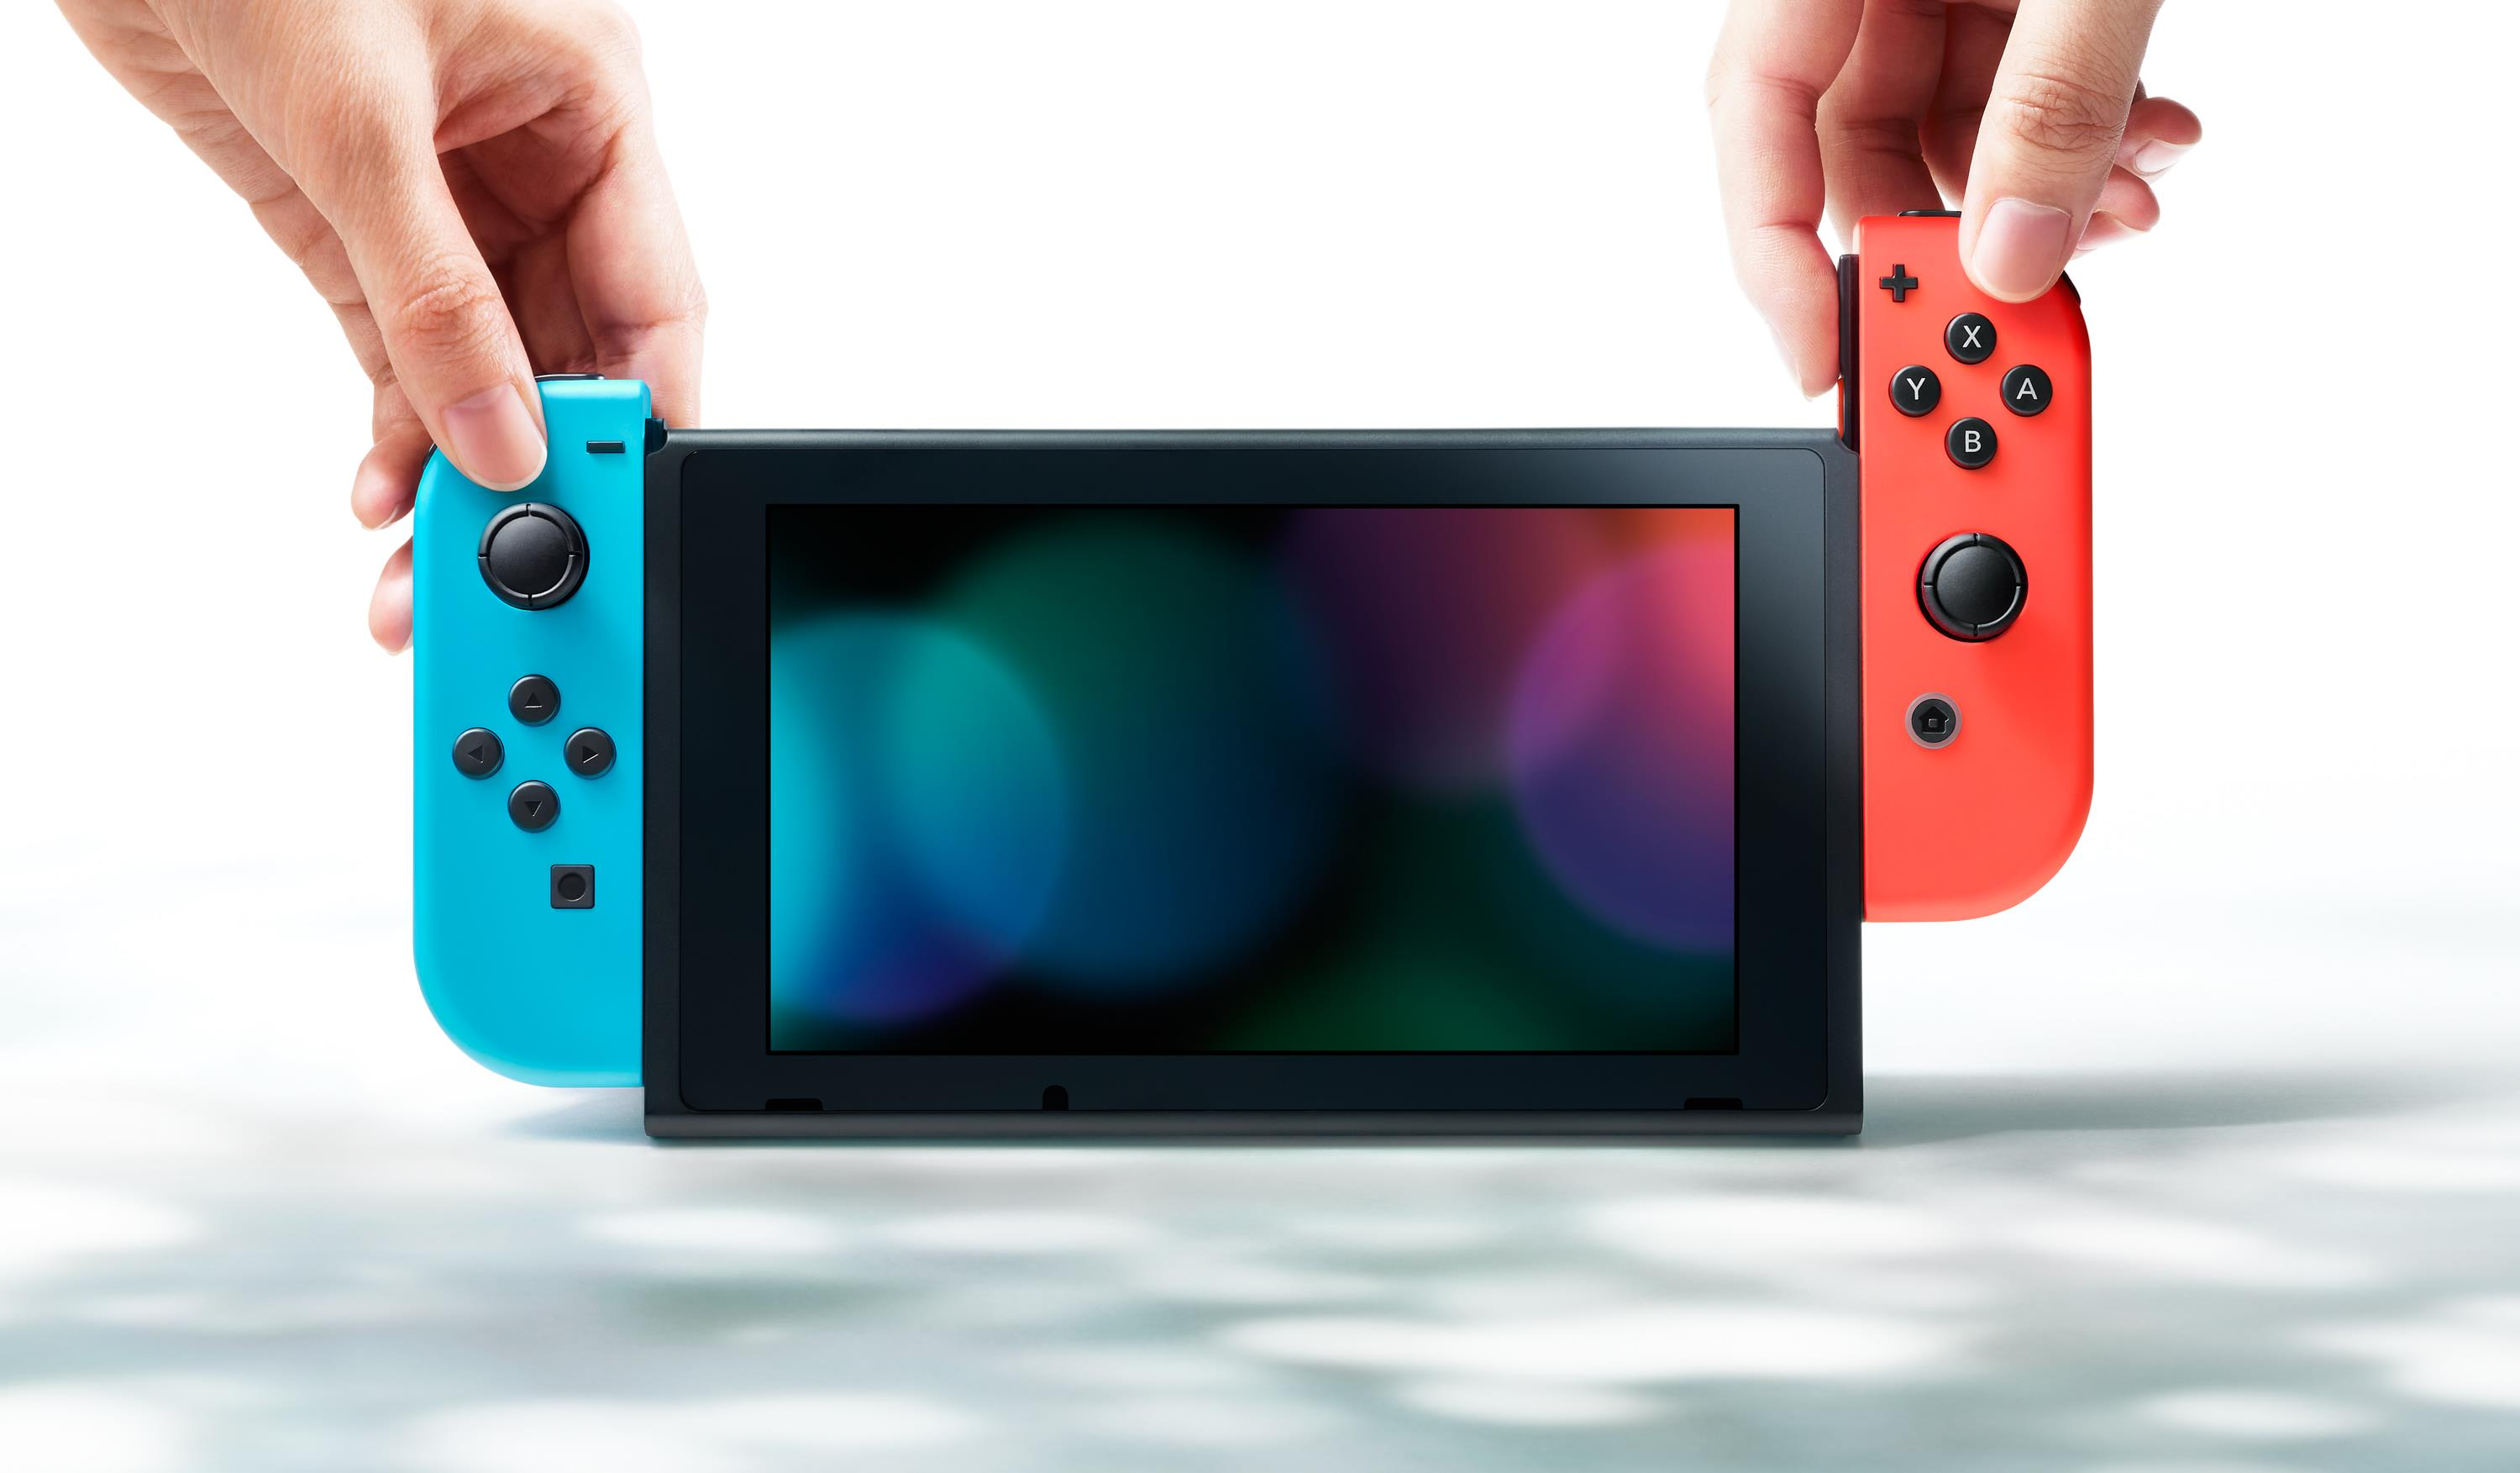 Les manettes de la Switch